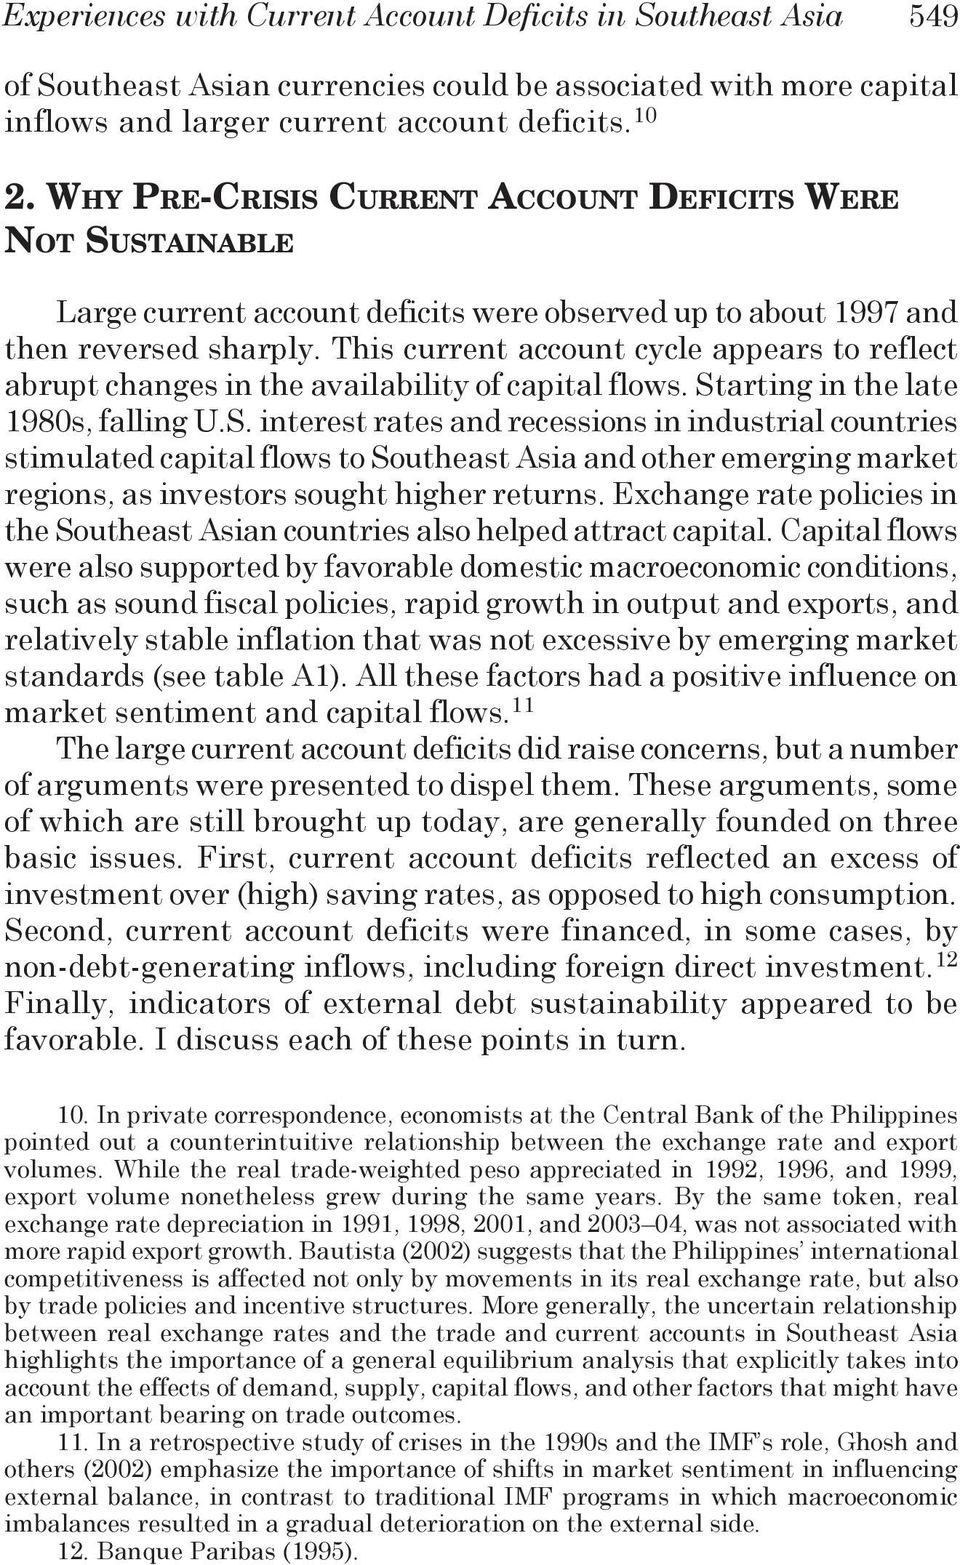 This current account cycle appears to reflect abrupt changes in the availability of capital flows. St